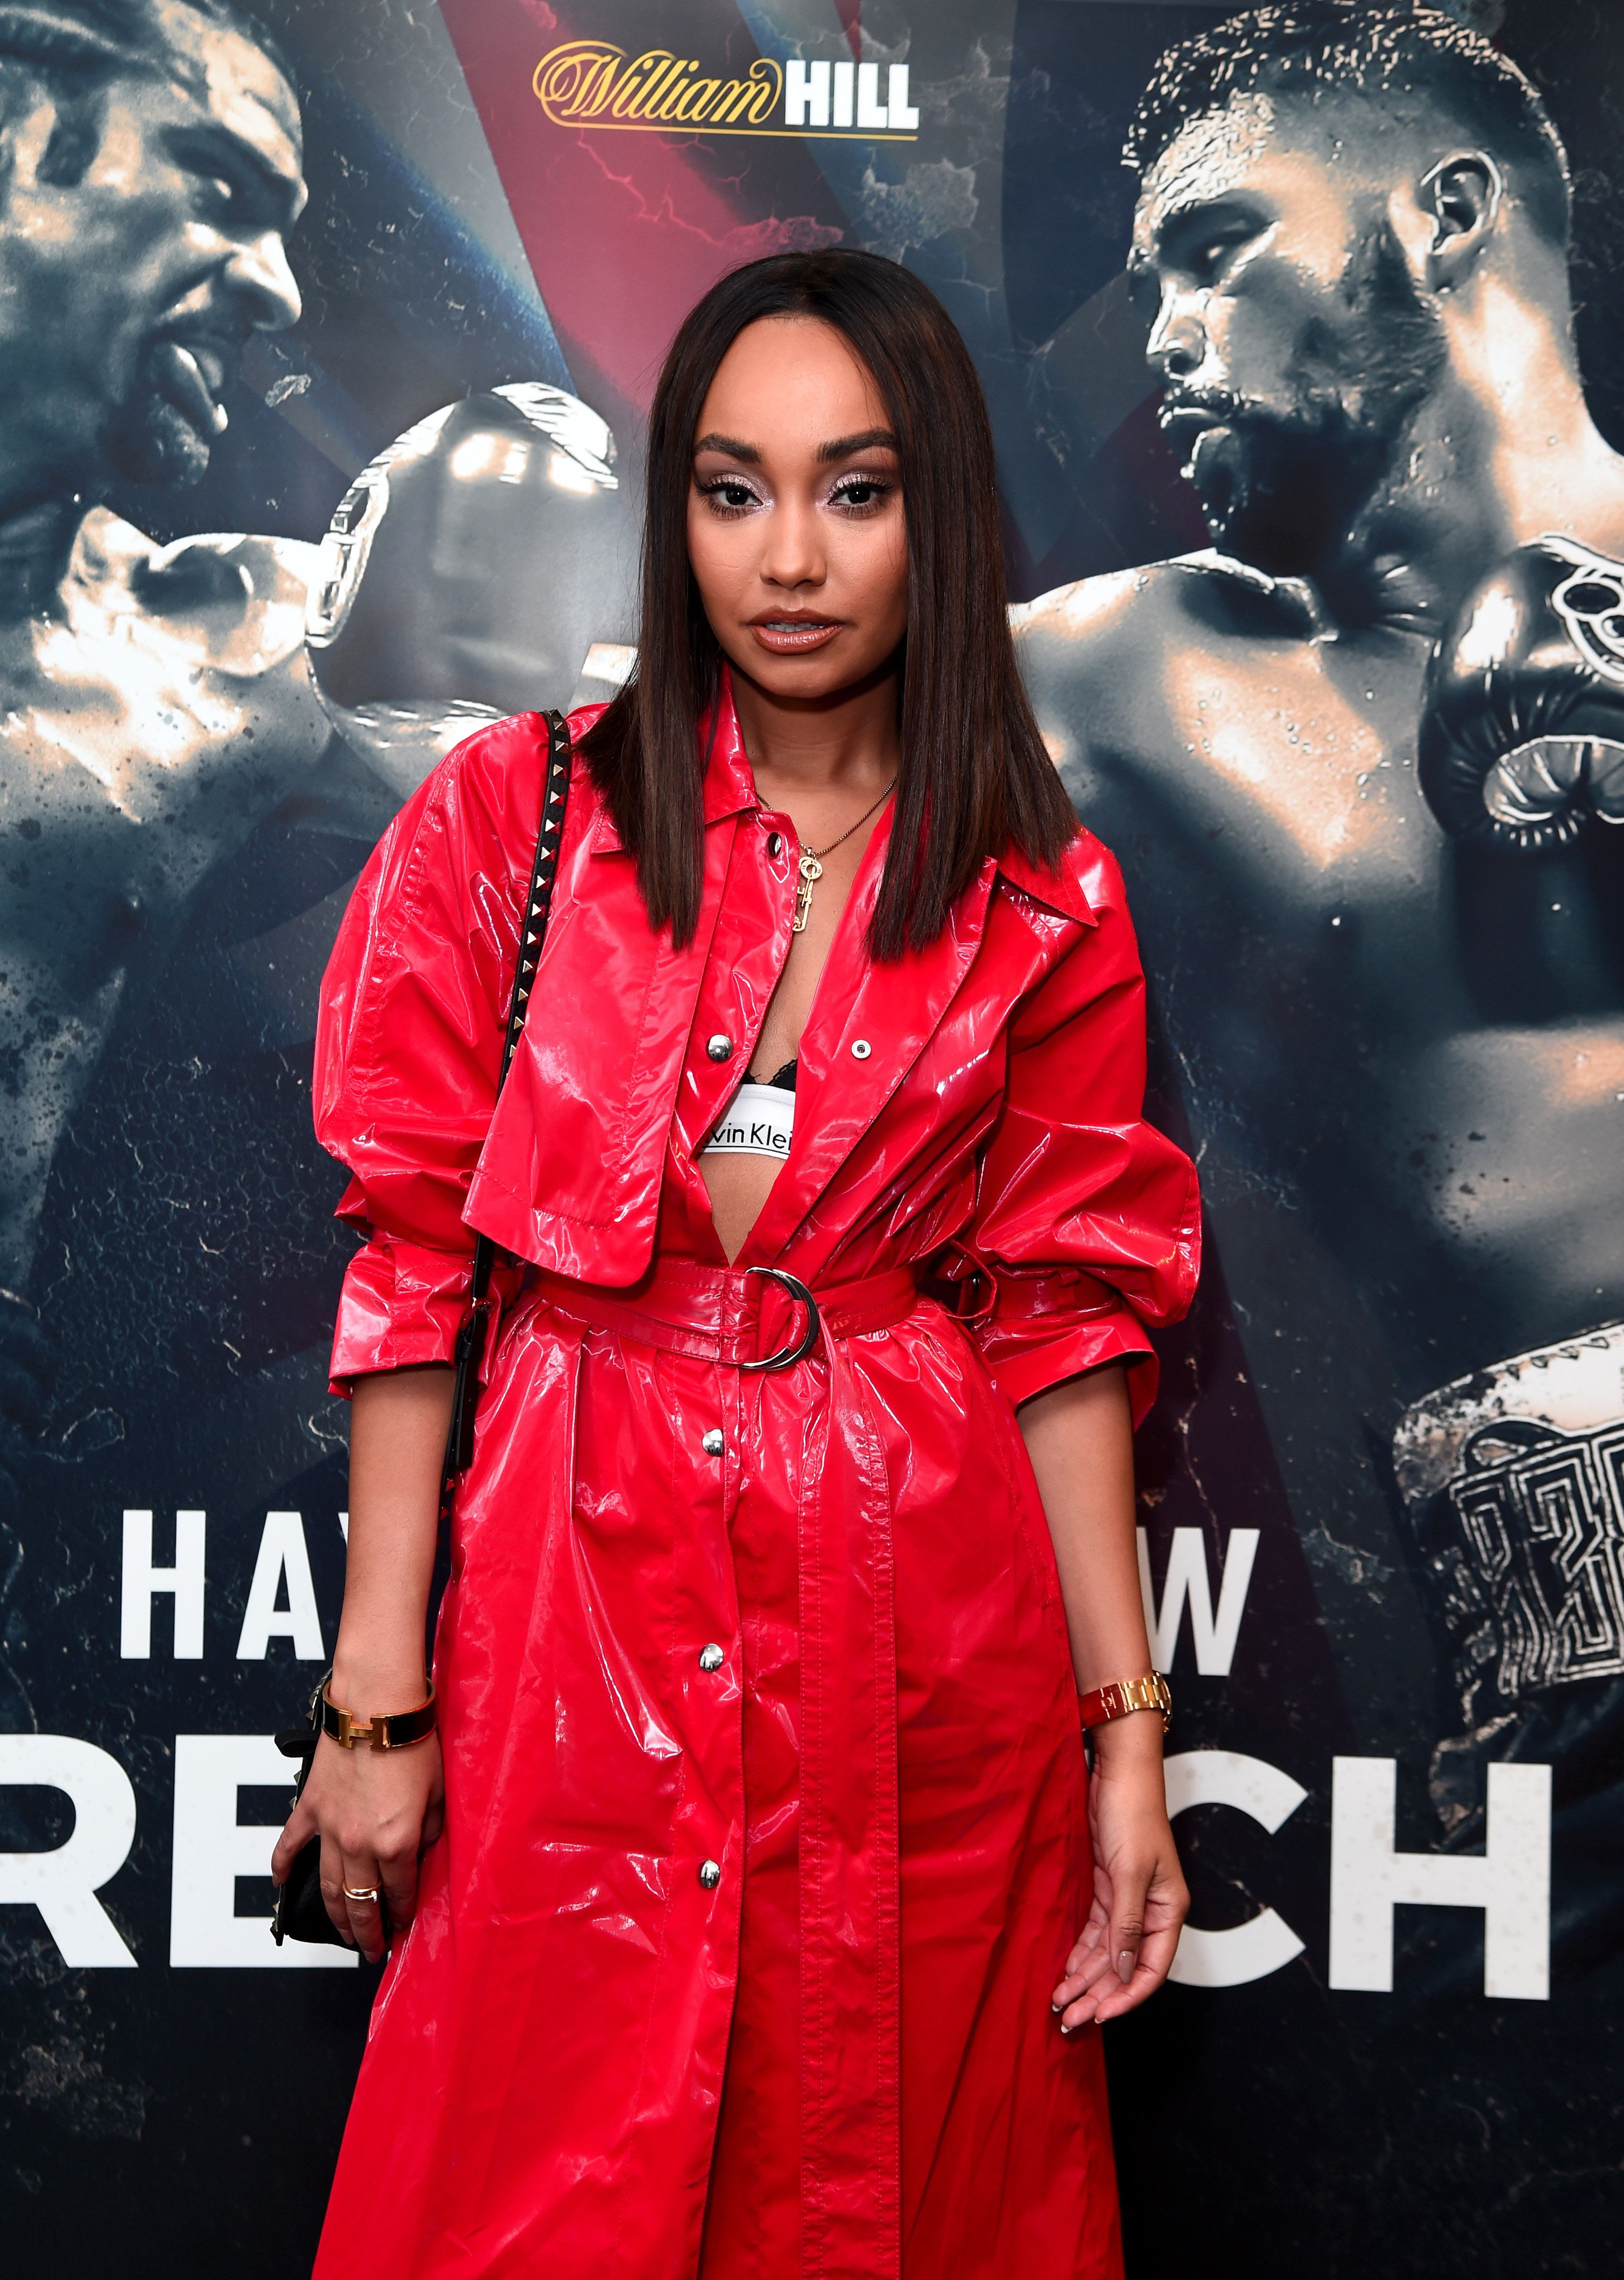 'Love Island': Little Mix's Leigh-Anne Pinnock Criticises Show's Lack Of